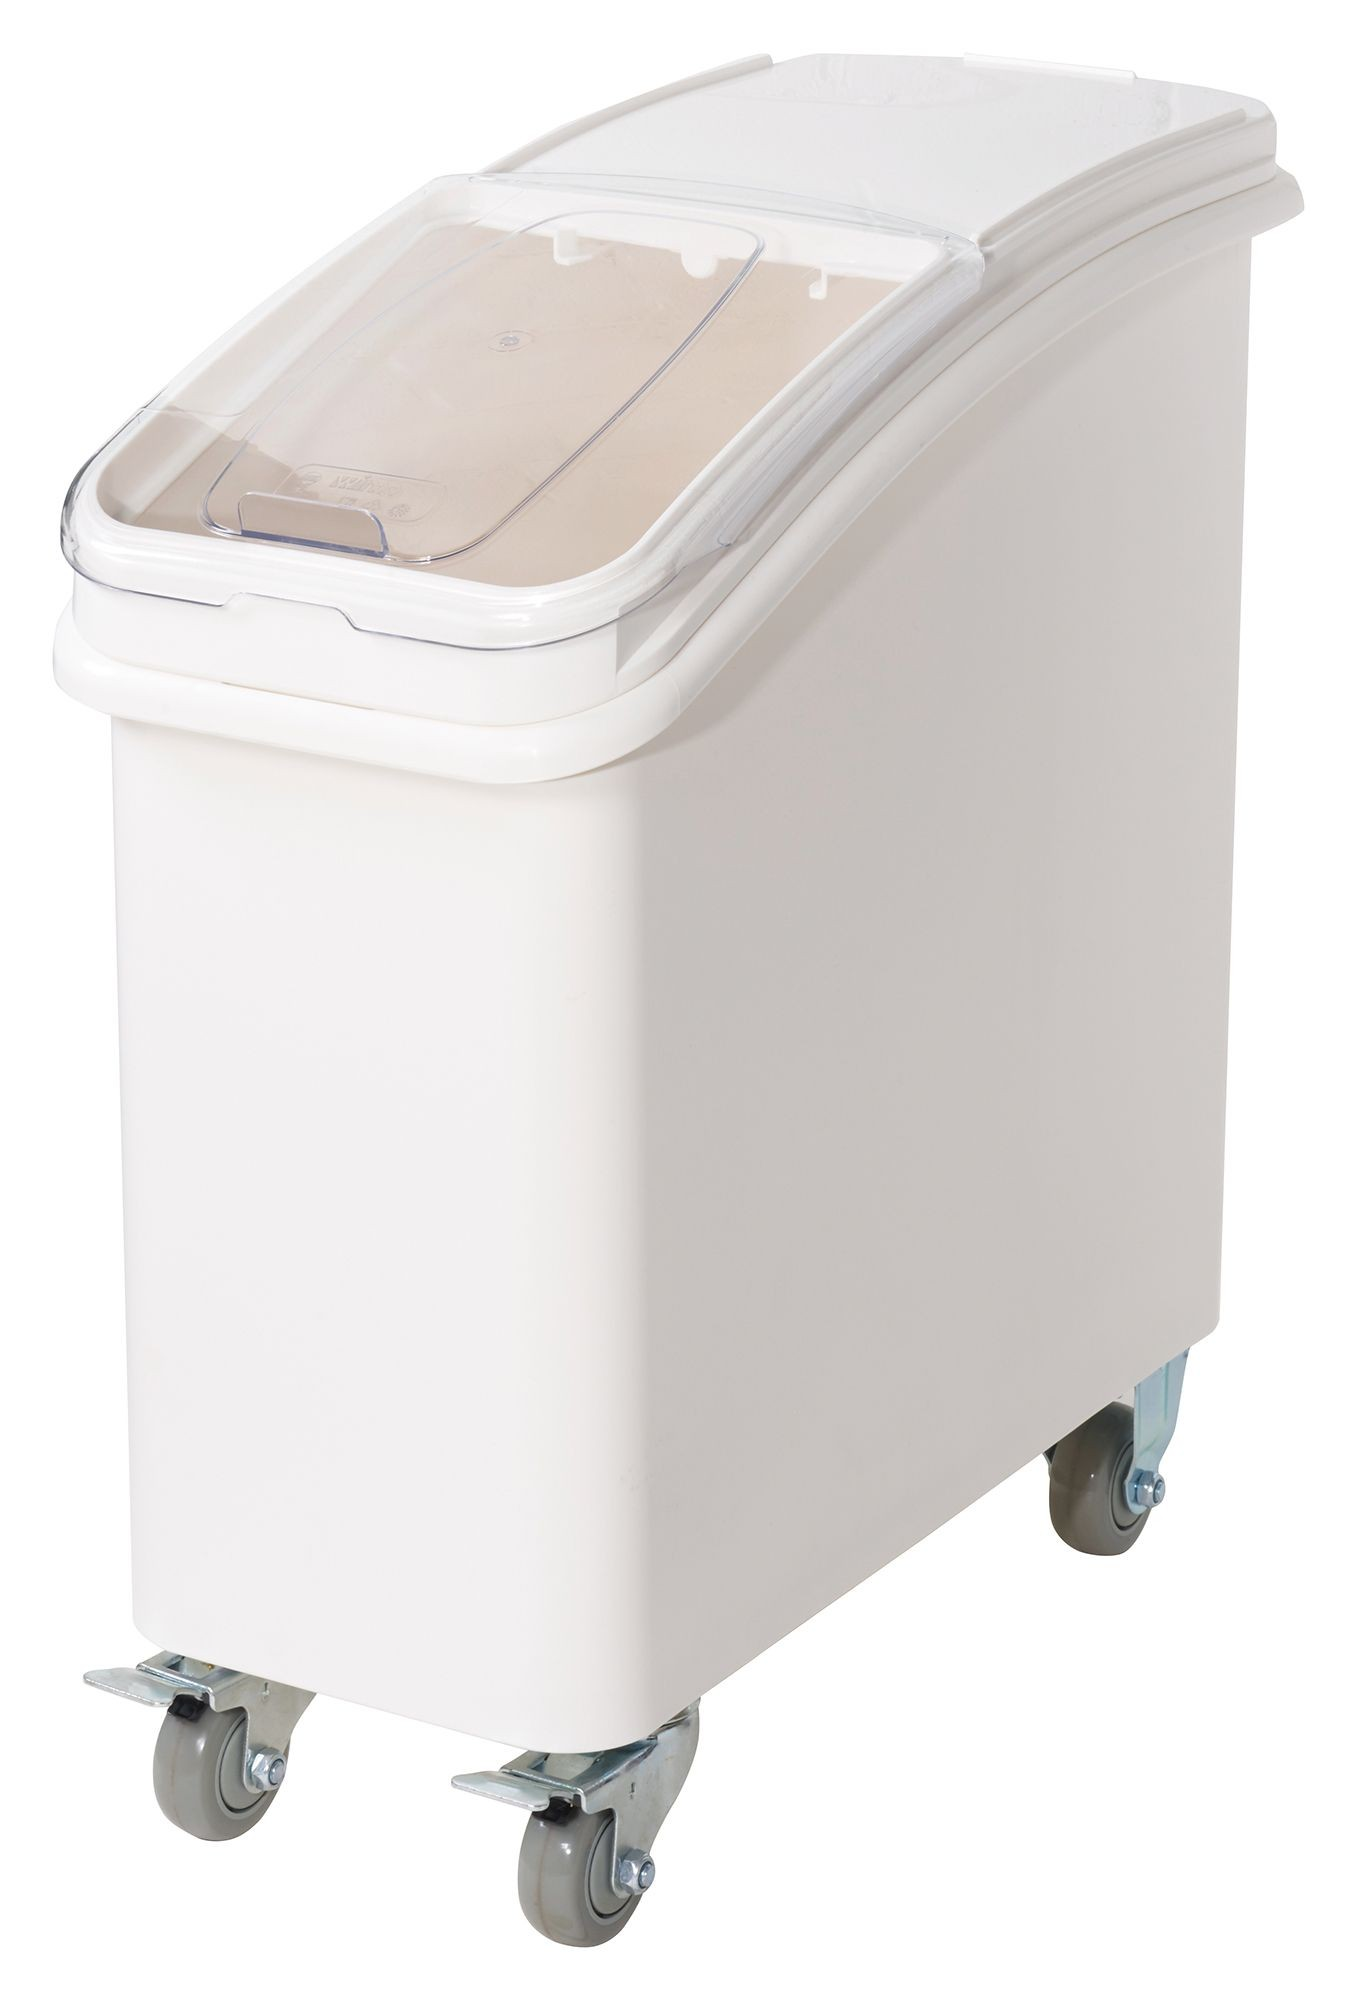 Winco IB-21 Plastic Ingredient Bin, 21 Gallon